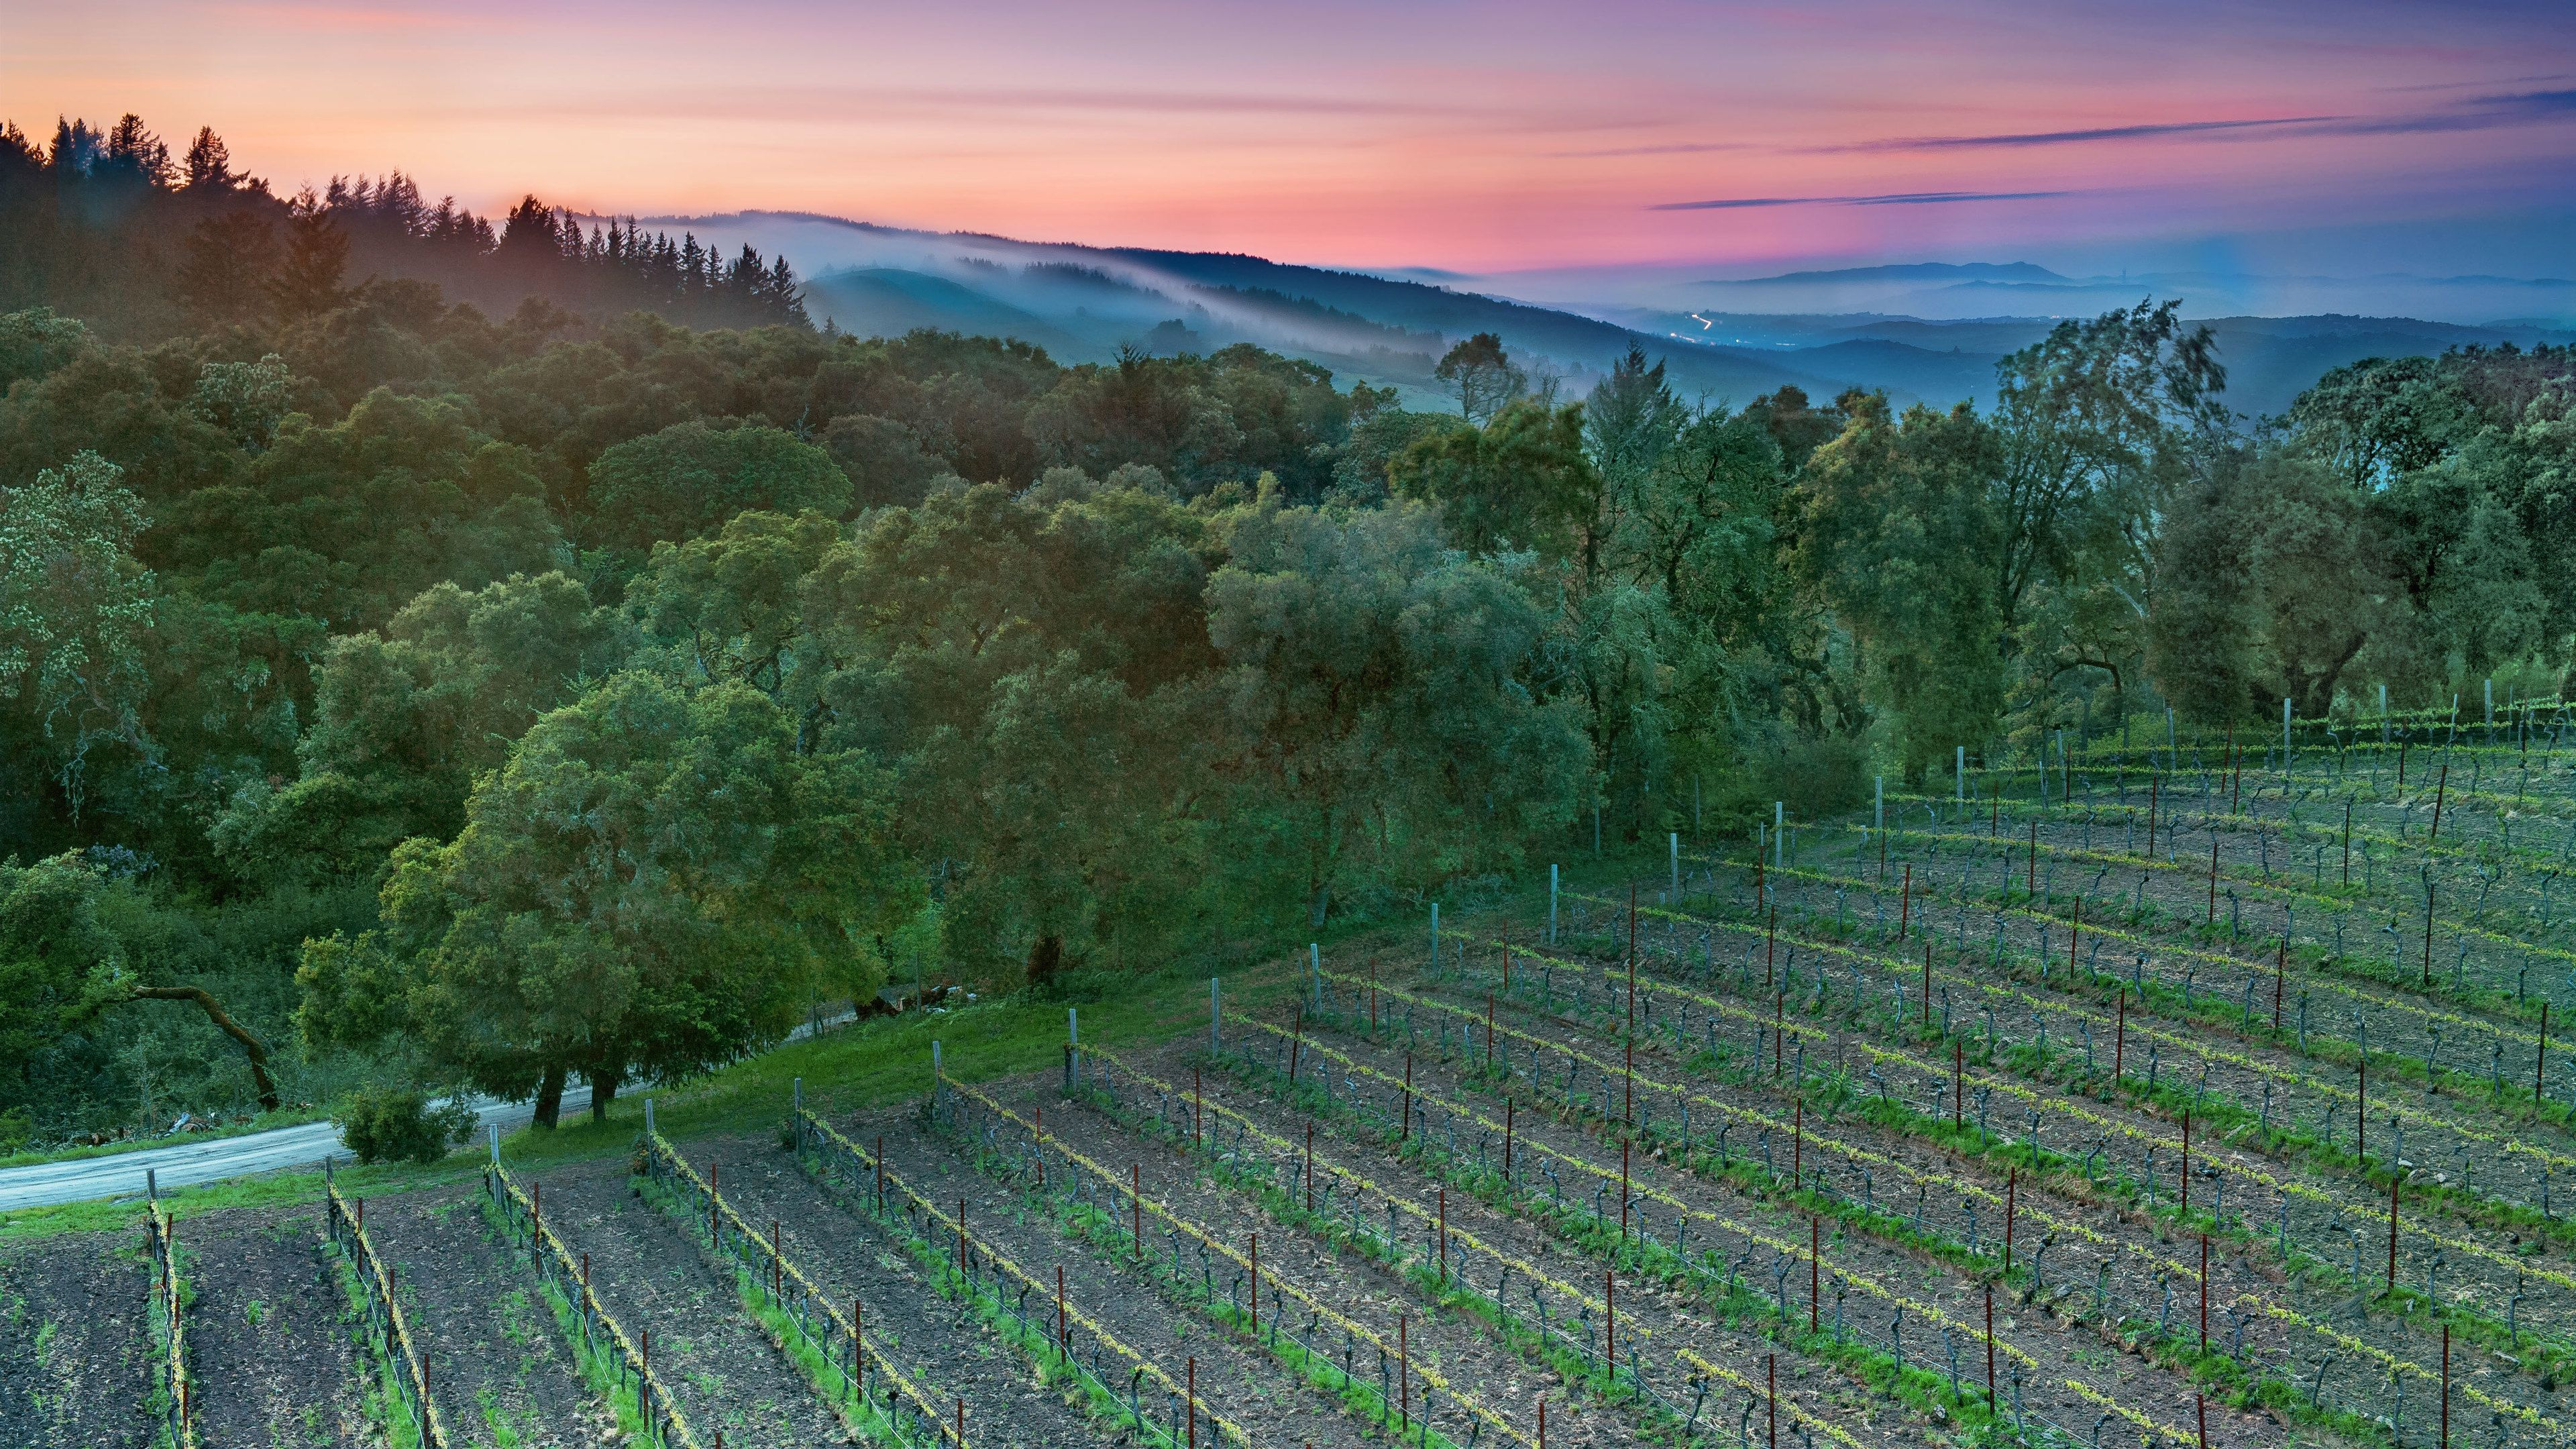 Panoramic view of the vineyards in Sonoma at sunset